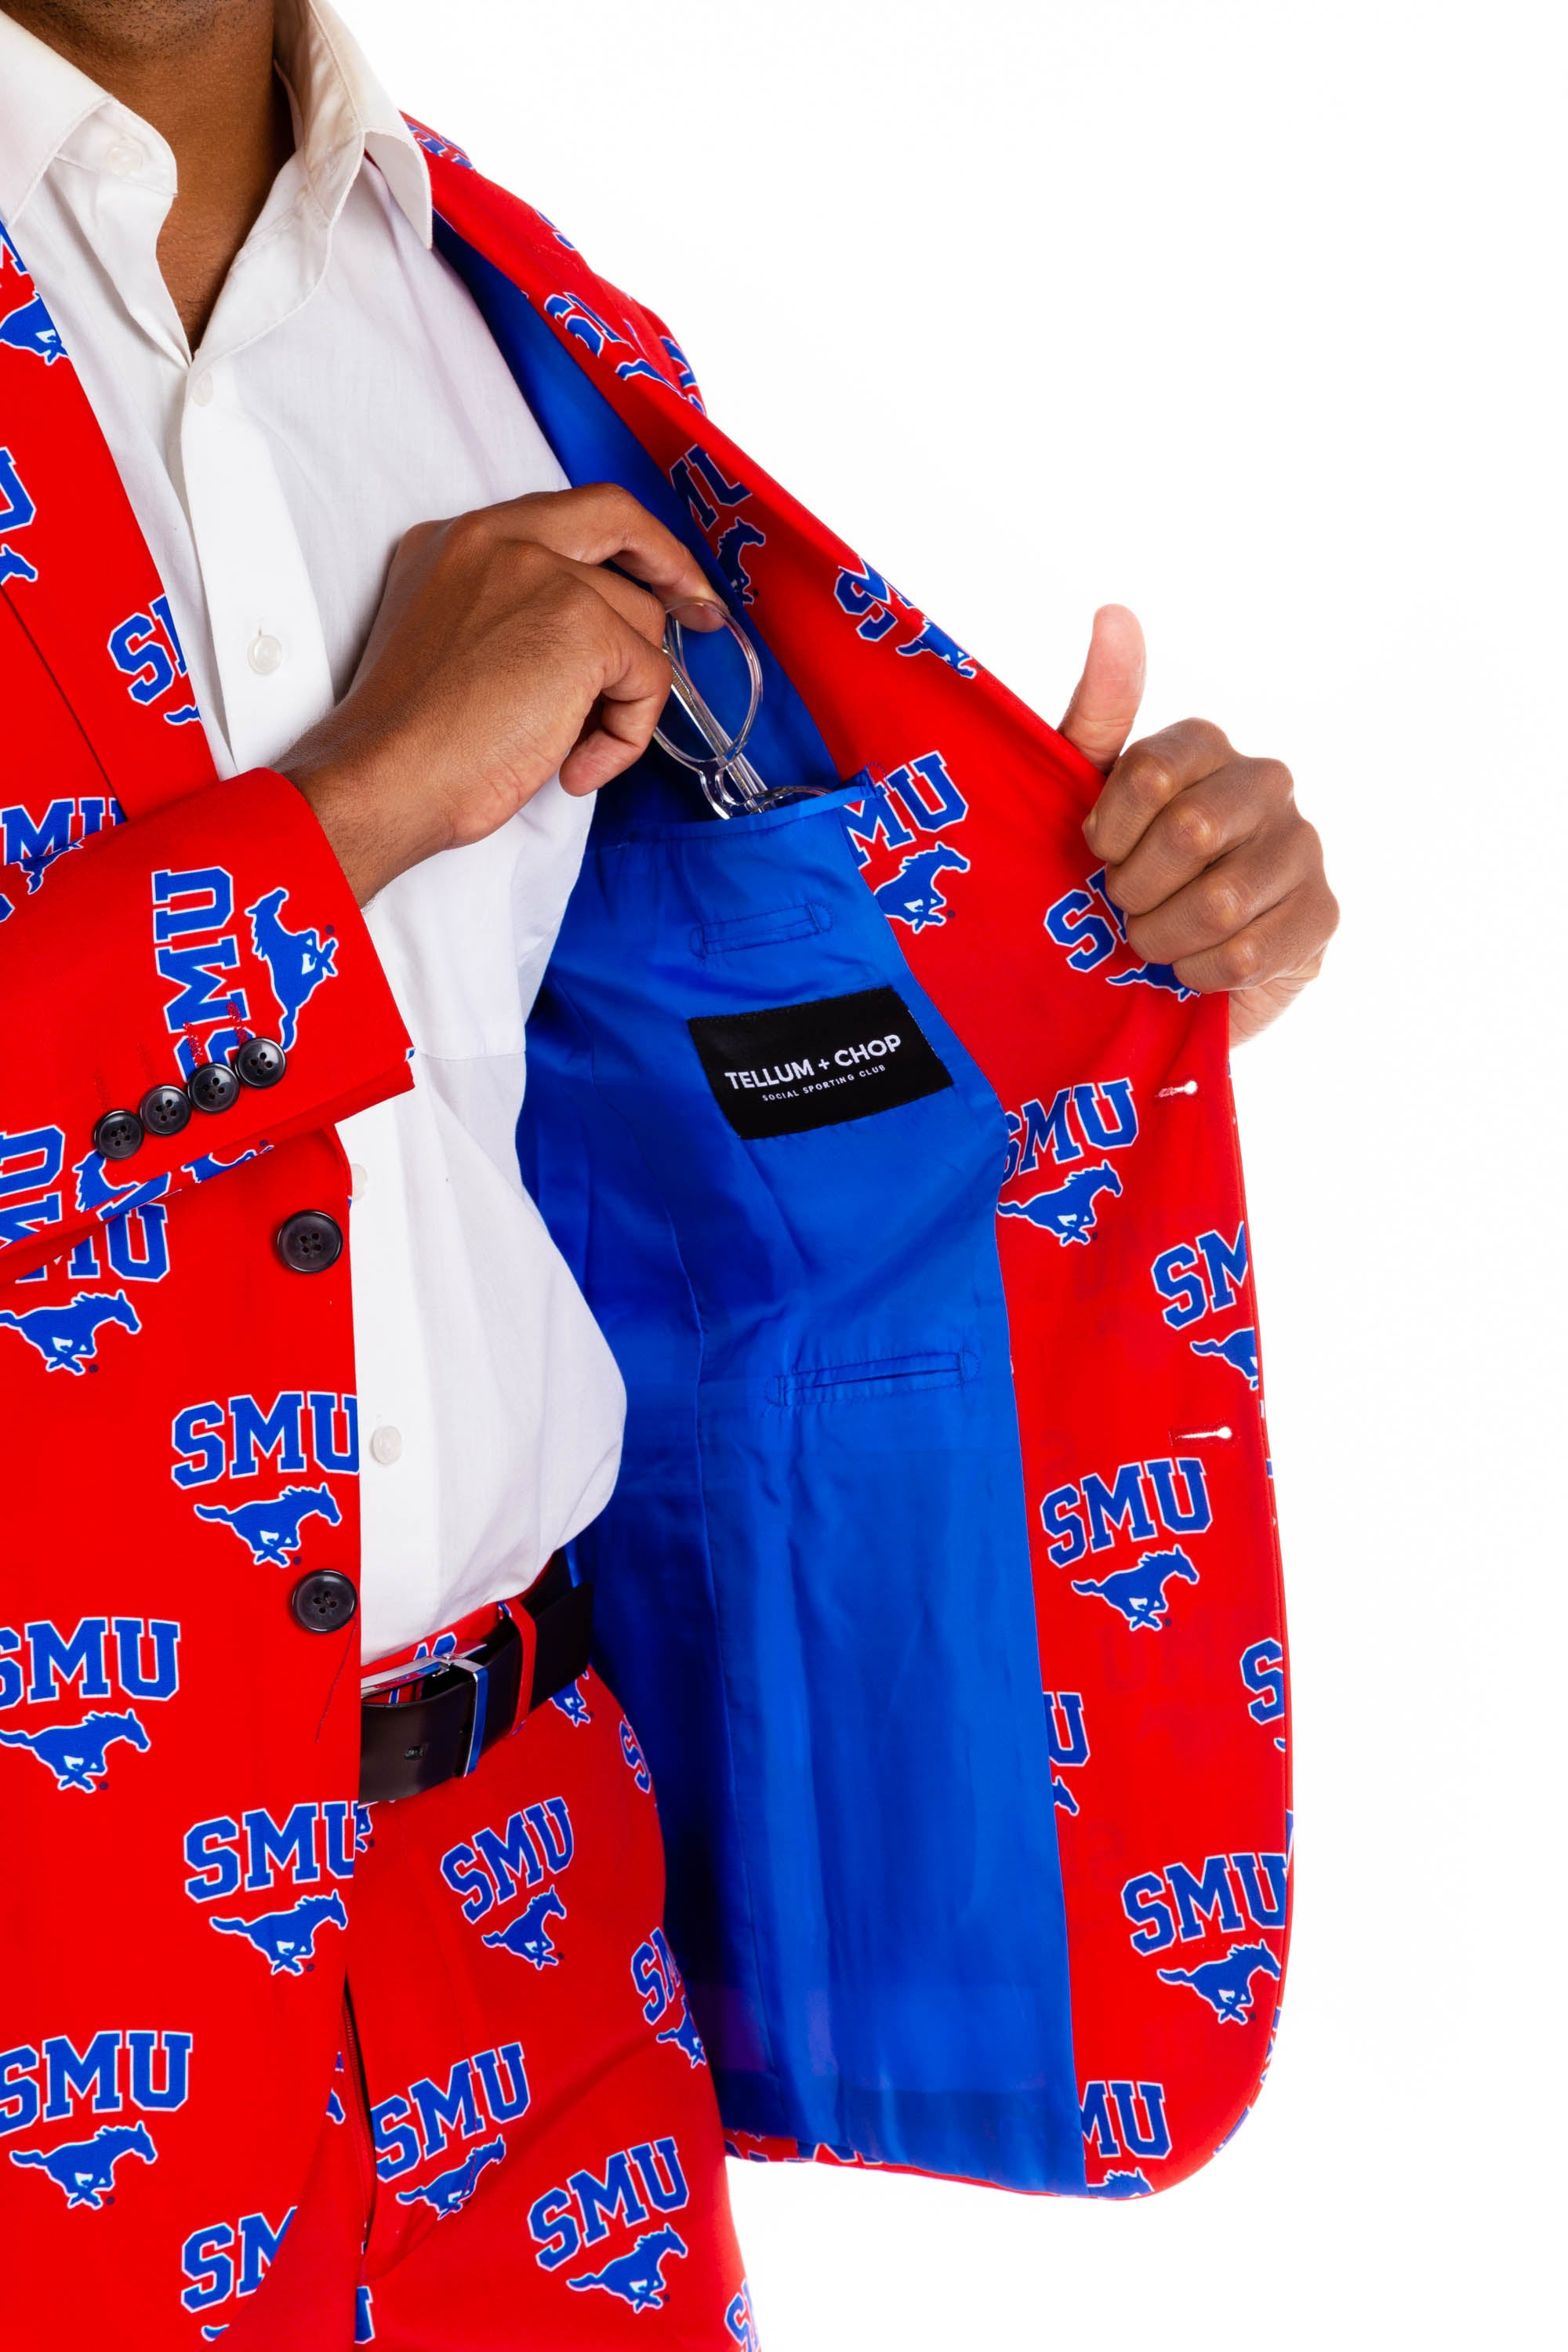 Southern Methodist University Blazer Interior Pocket